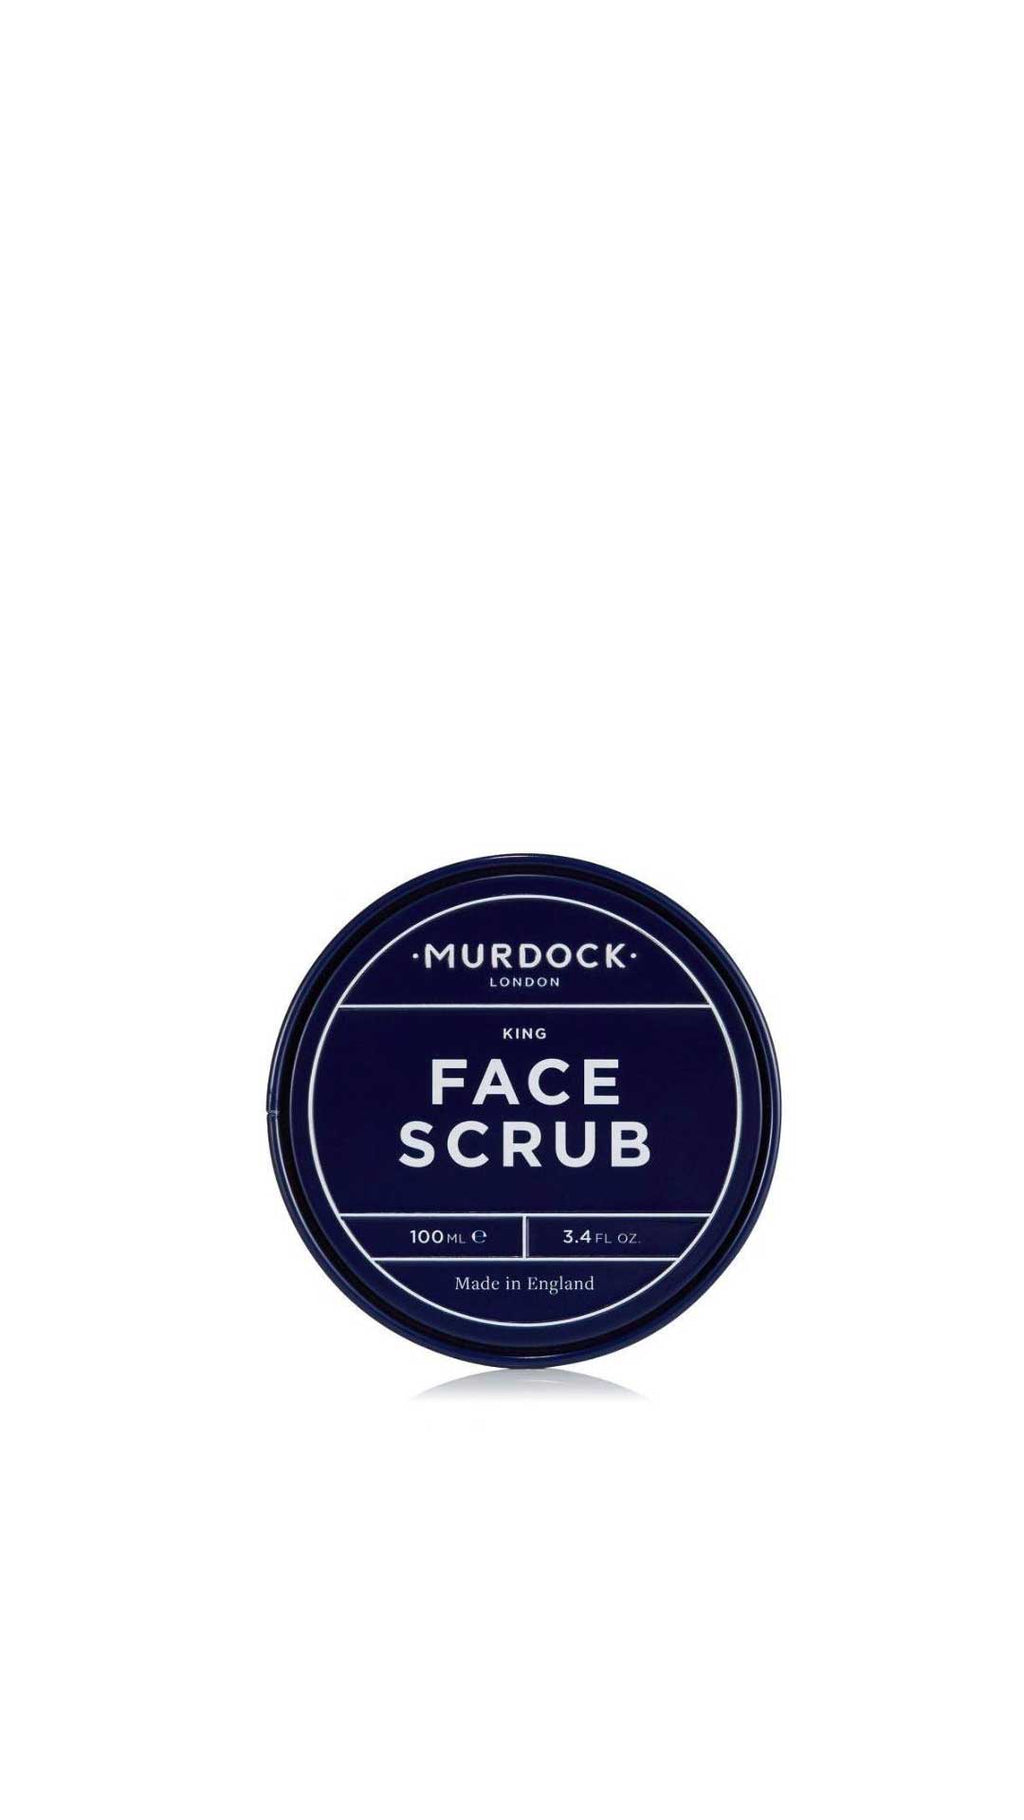 FACE SCRUB  - MURDOCK OF LONDON